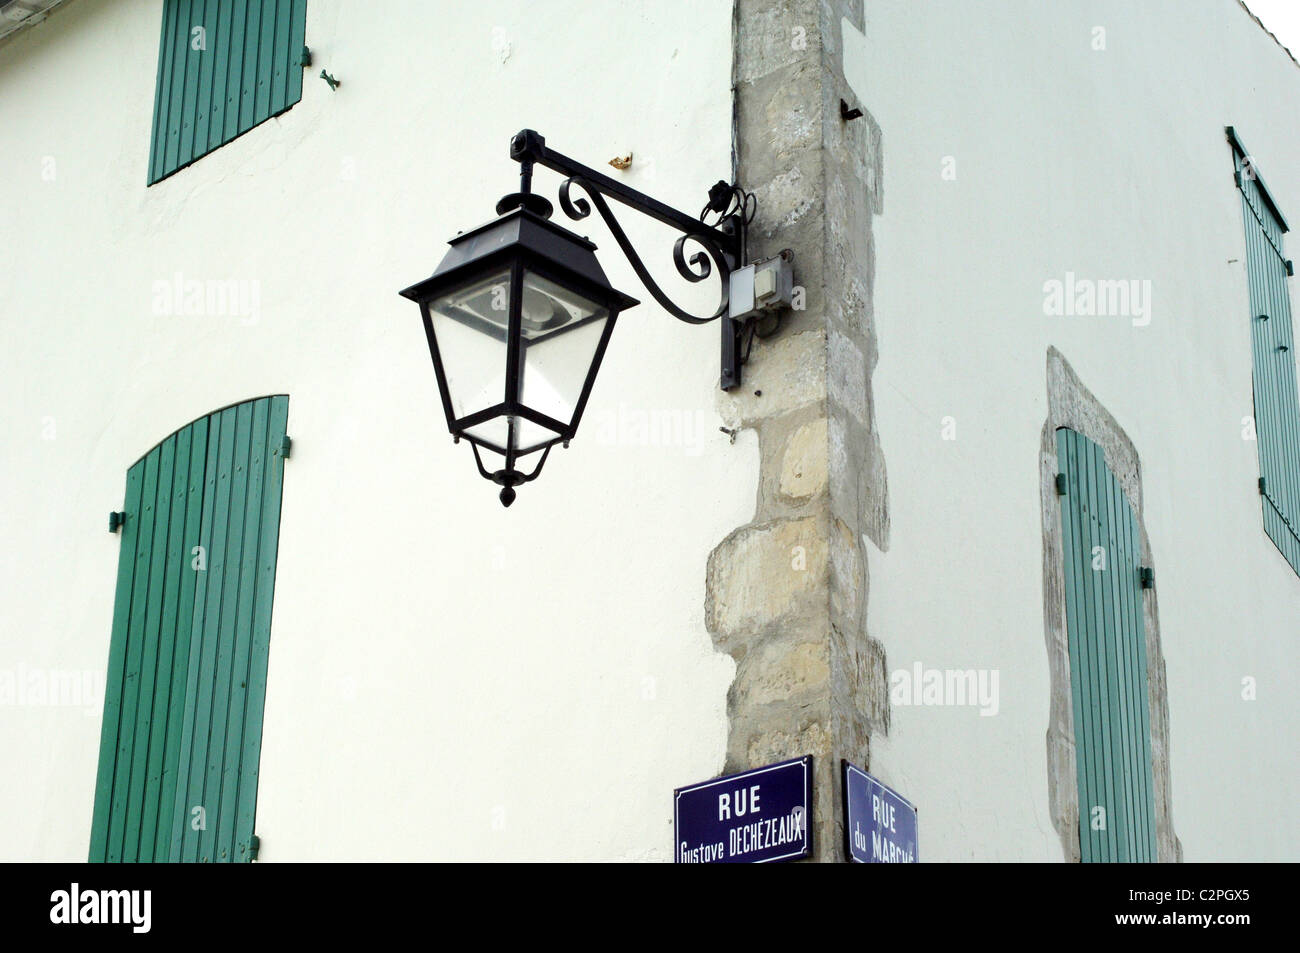 Streetlamp and shuttered windows, Il de Re, France - Stock Image